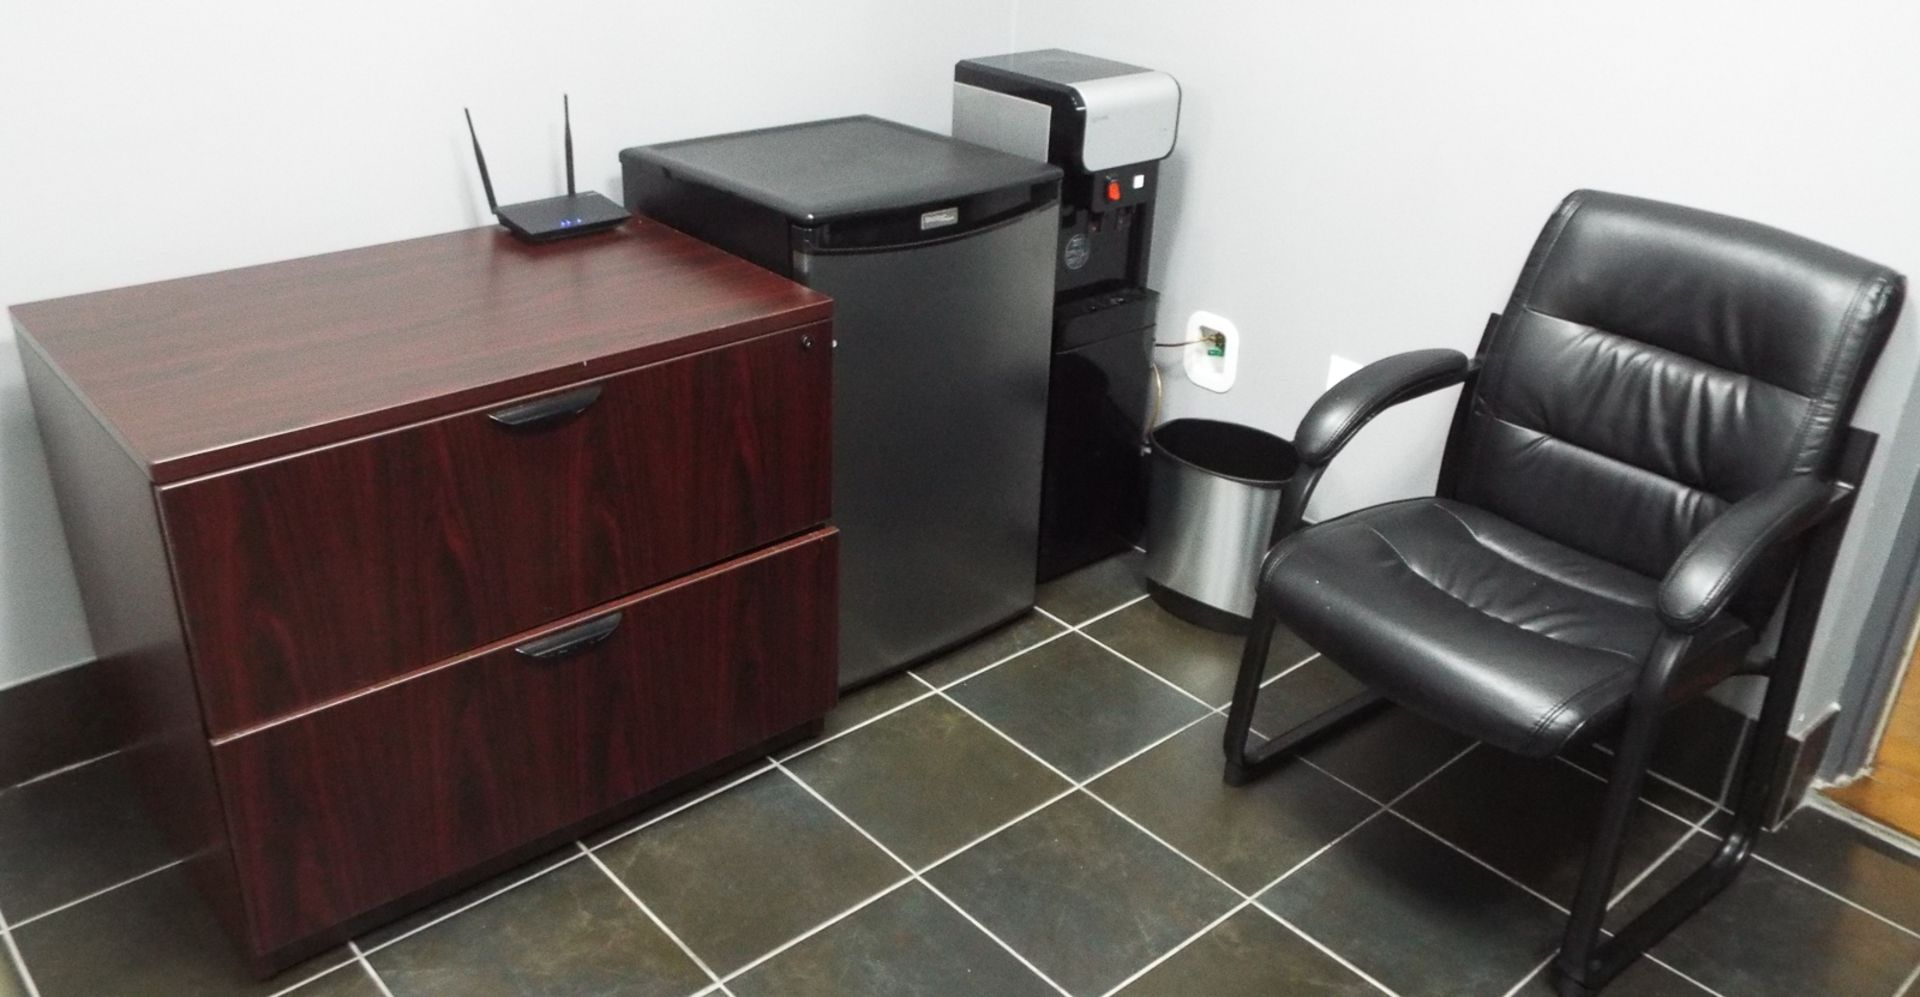 Lot 272 - LOT/ CONFERENCE TABLE WITH (7) OFFICE CHAIRS, 2 DRAWER LATERAL FILE CABINET, BAR FRIDGE, WATER